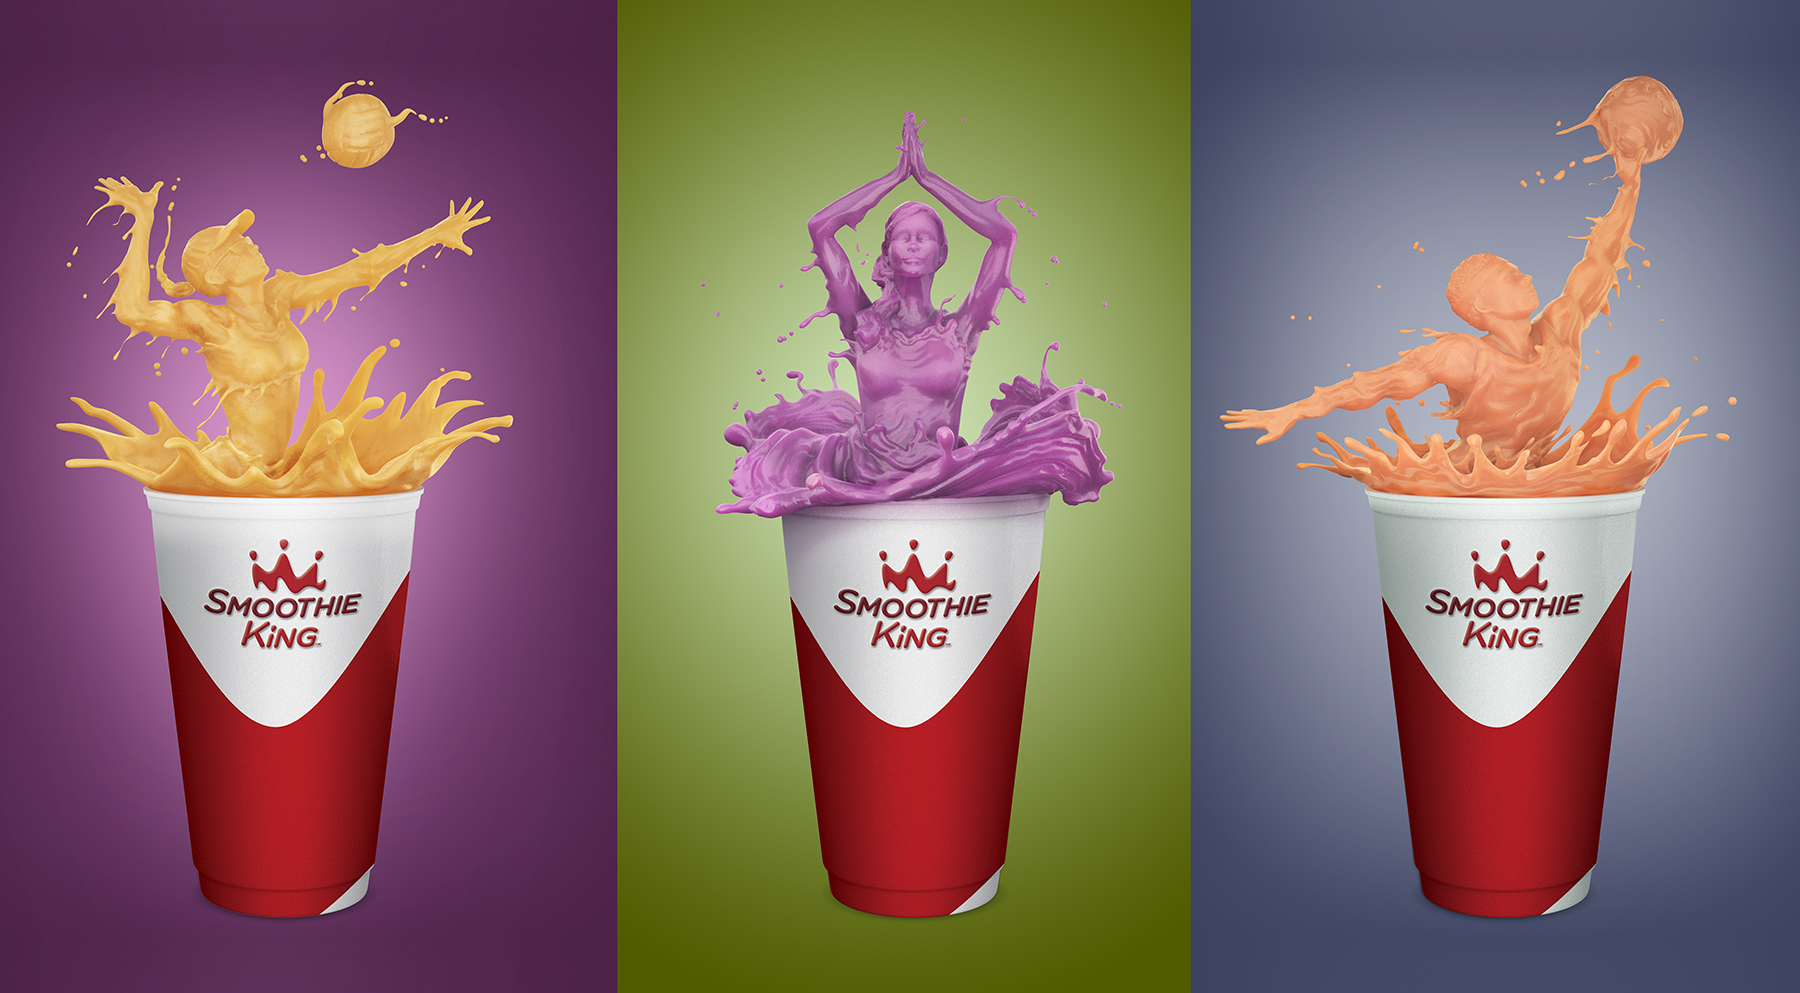 SmoothiekingLaunch_lr